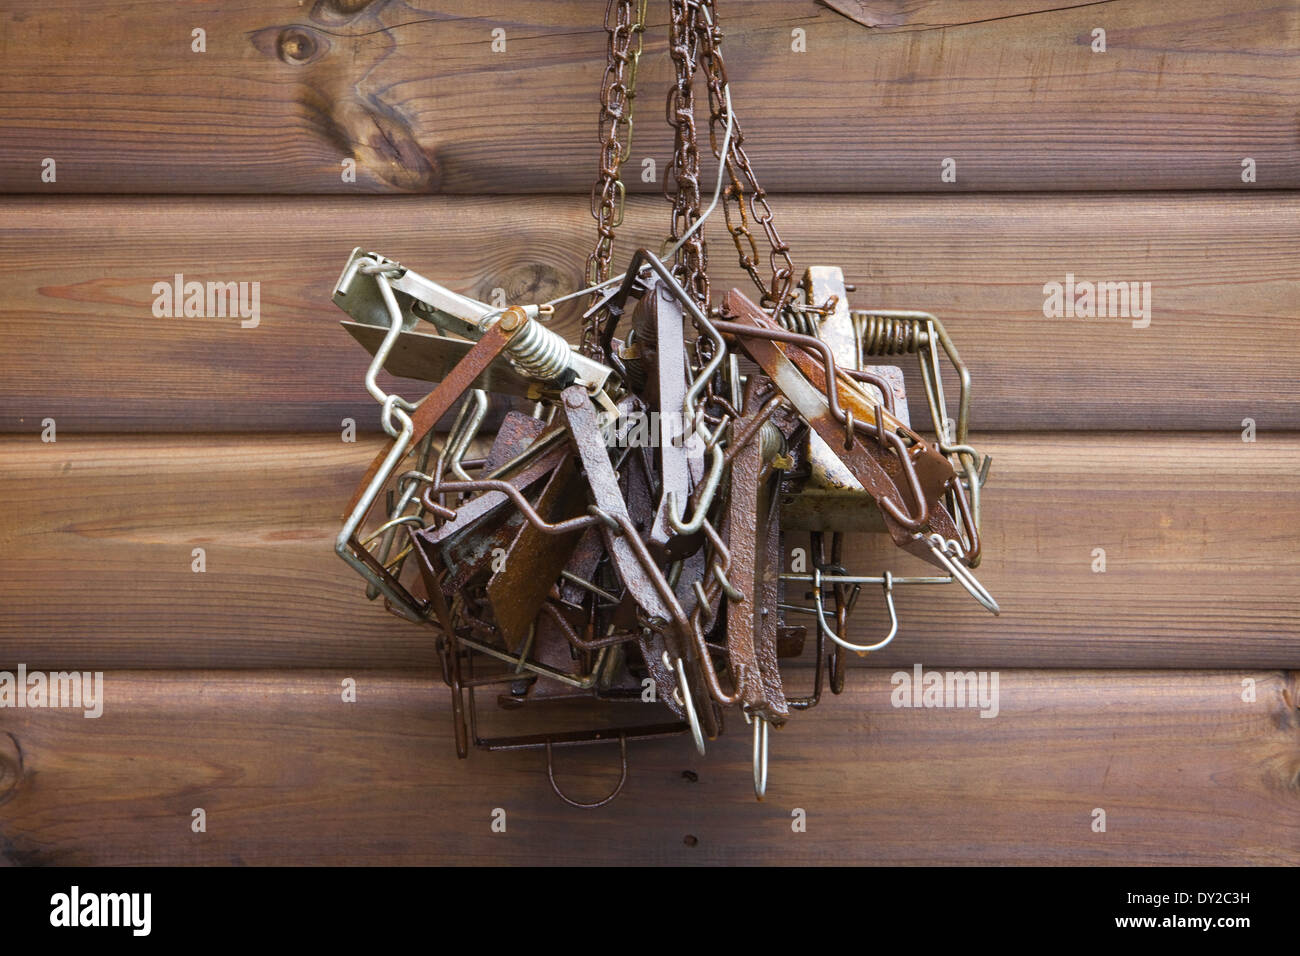 Squirrel Trap Stock Photos Squirrel Trap Stock Images Alamy